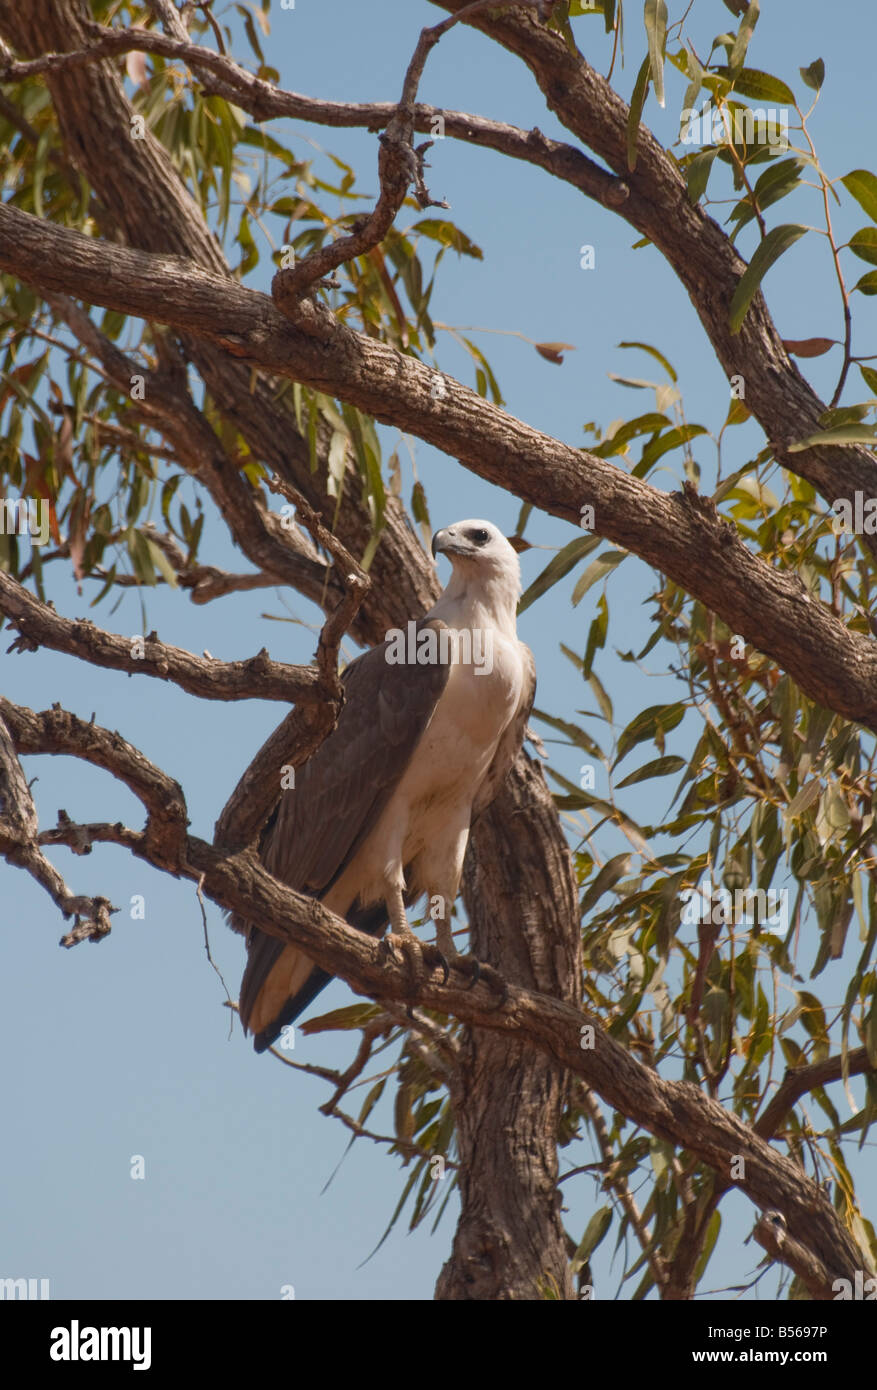 A white bresated sea eagle roosting in a eucalypt tree near Broome Western Australia - Stock Image